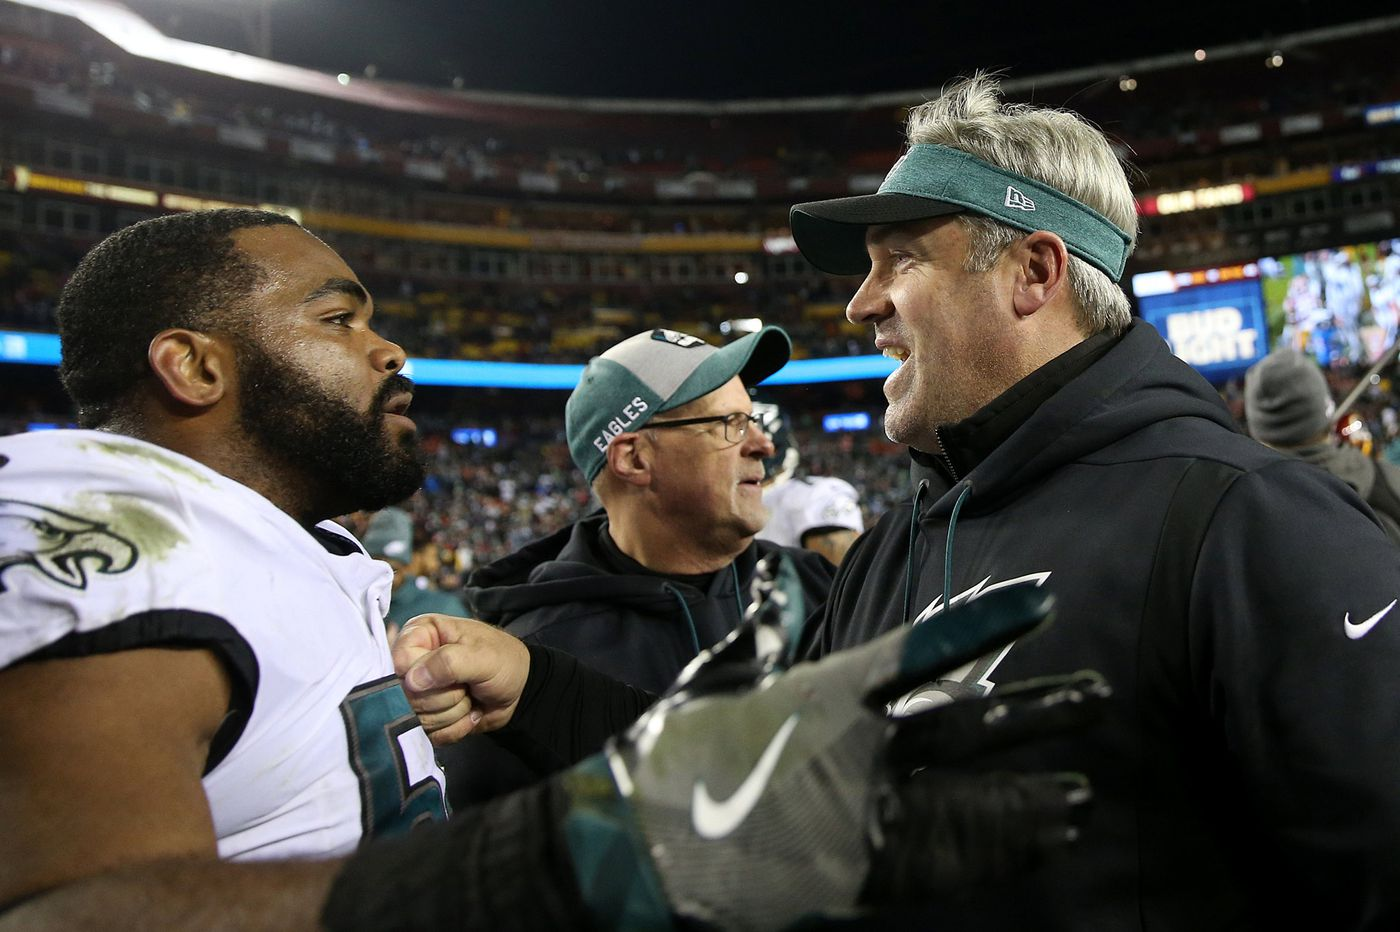 If Doug Pederson's demeanor is any indication, the Eagles will be in good shape against the Bears | Mike Sielski